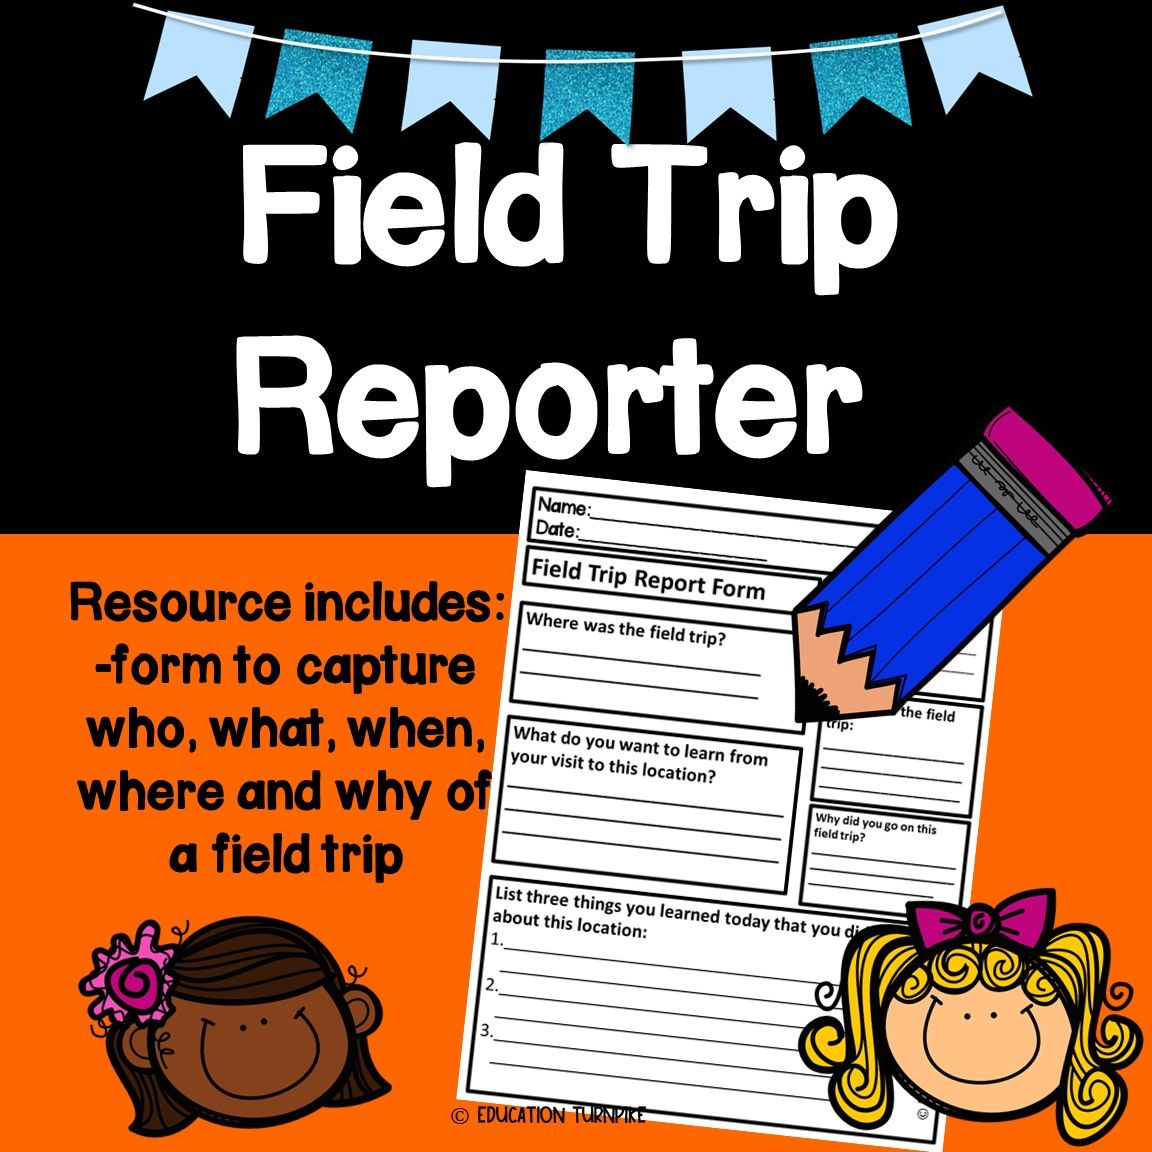 Field Trip Reporting Form